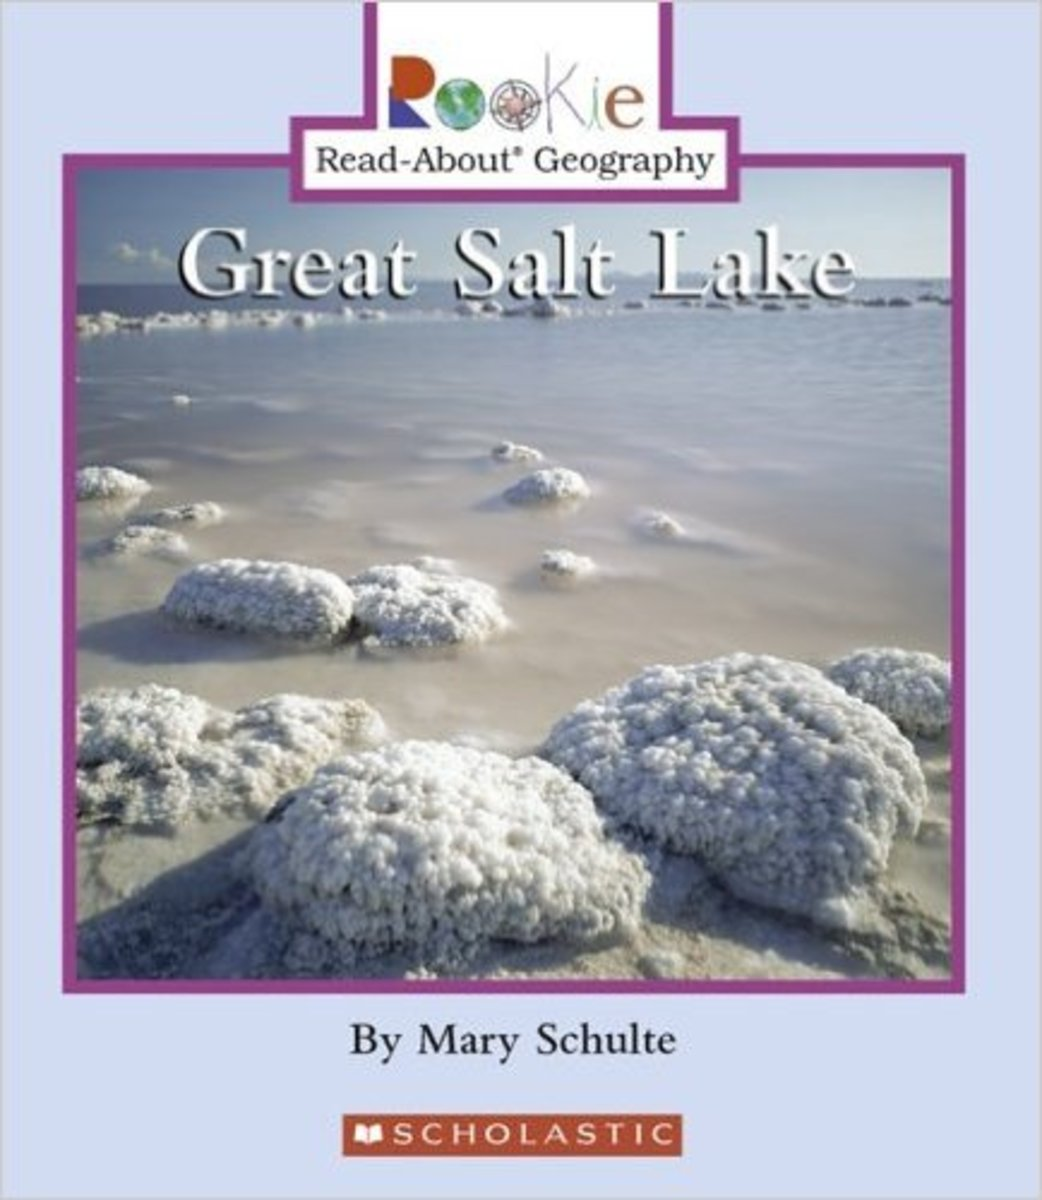 Great Salt Lake (Rookie Read-About Geography) by Mary Schulte  - Images are from amazon.com